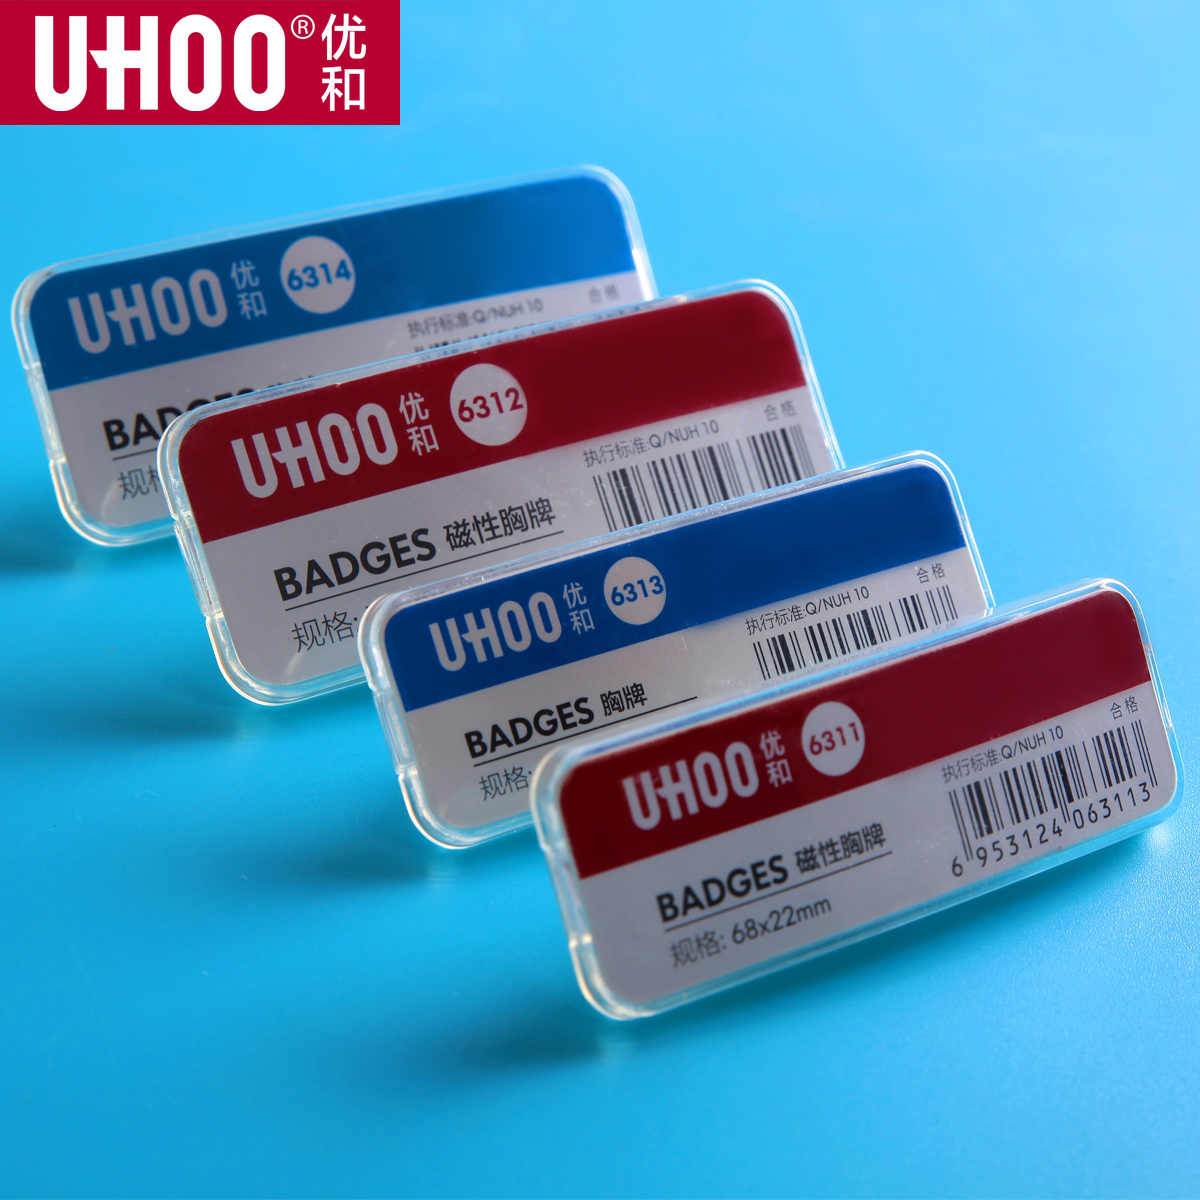 4pcs/lot UHOO Waterproof ABS Rectangle Pin Badge Price Tag Name Tag Work  Name Plate for Bank, Hotel, School, Work| | - AliExpress